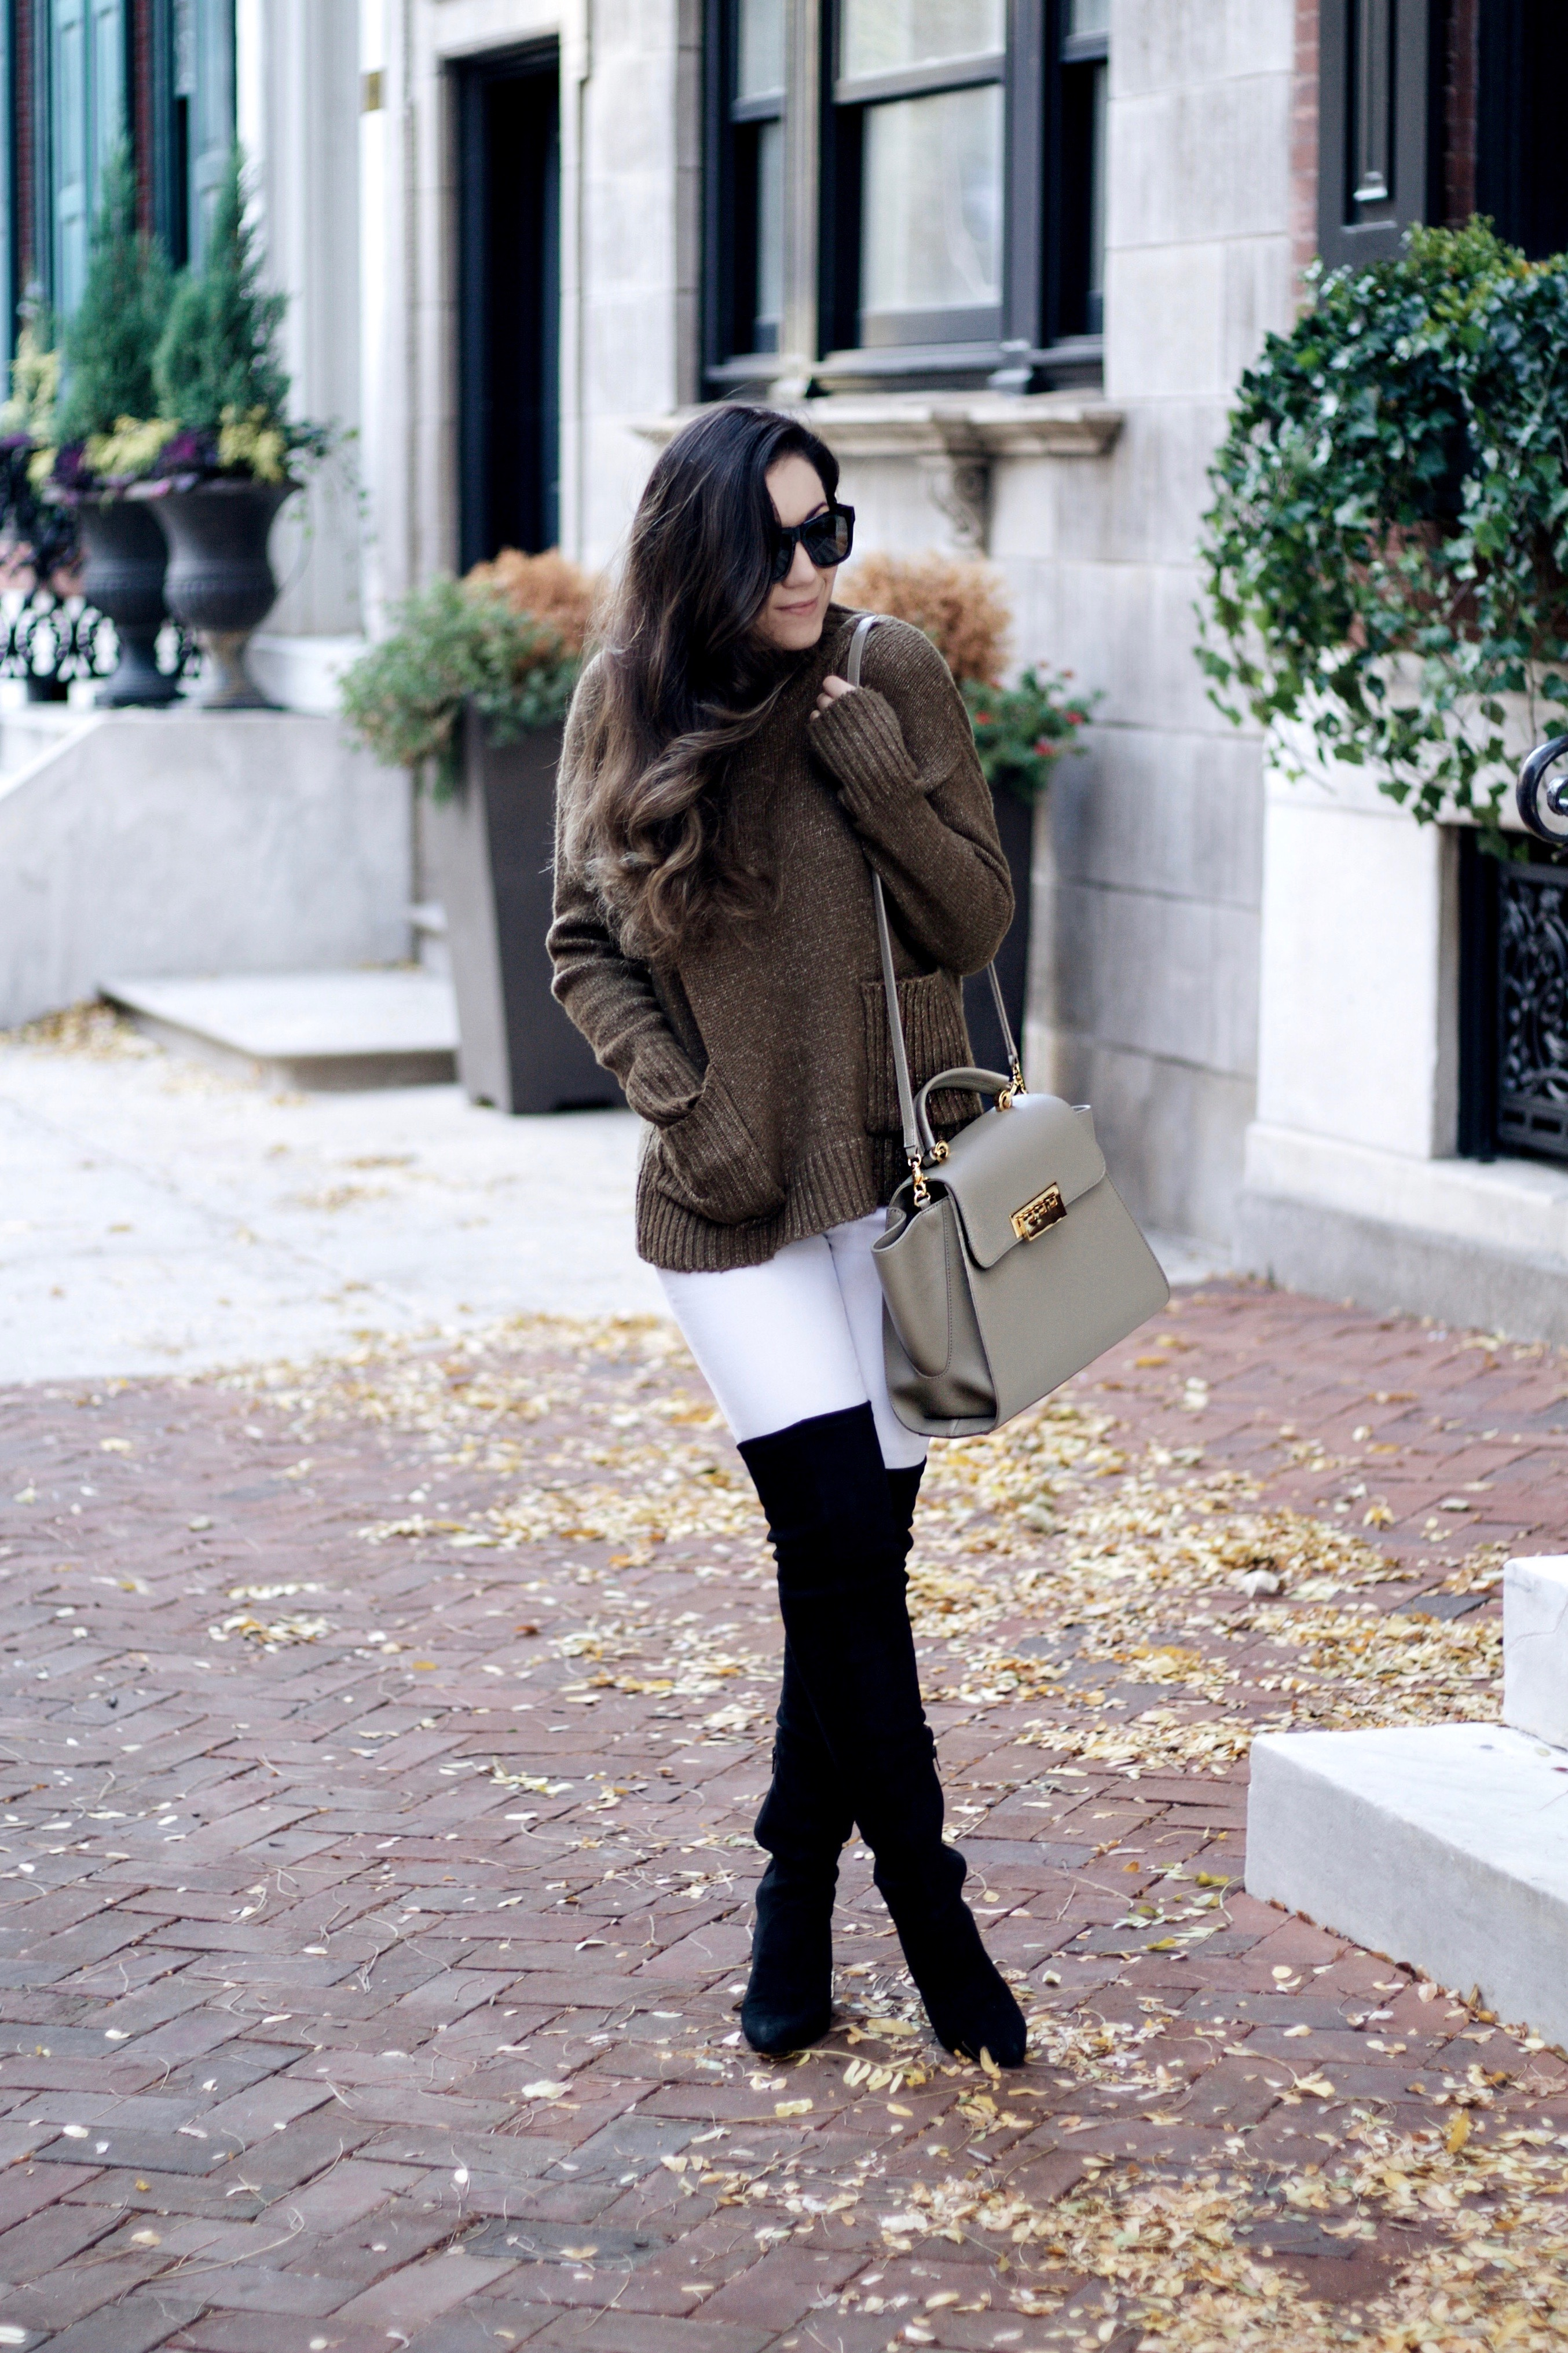 Chunky Sweater, Zac Posen Bag, and OTK Boots